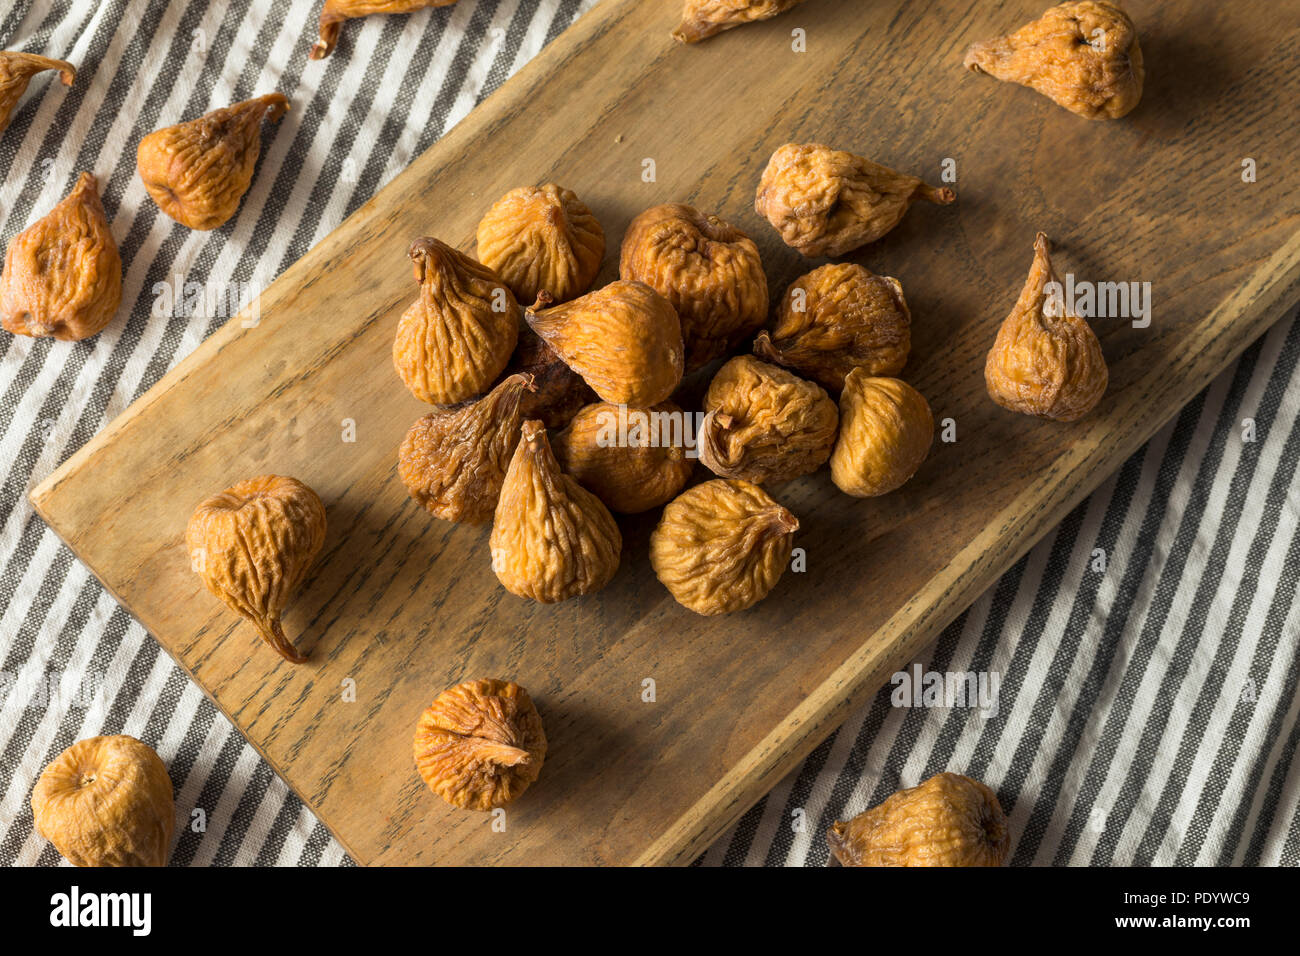 Raw Brown Dried Figs Ready to Eat - Stock Image